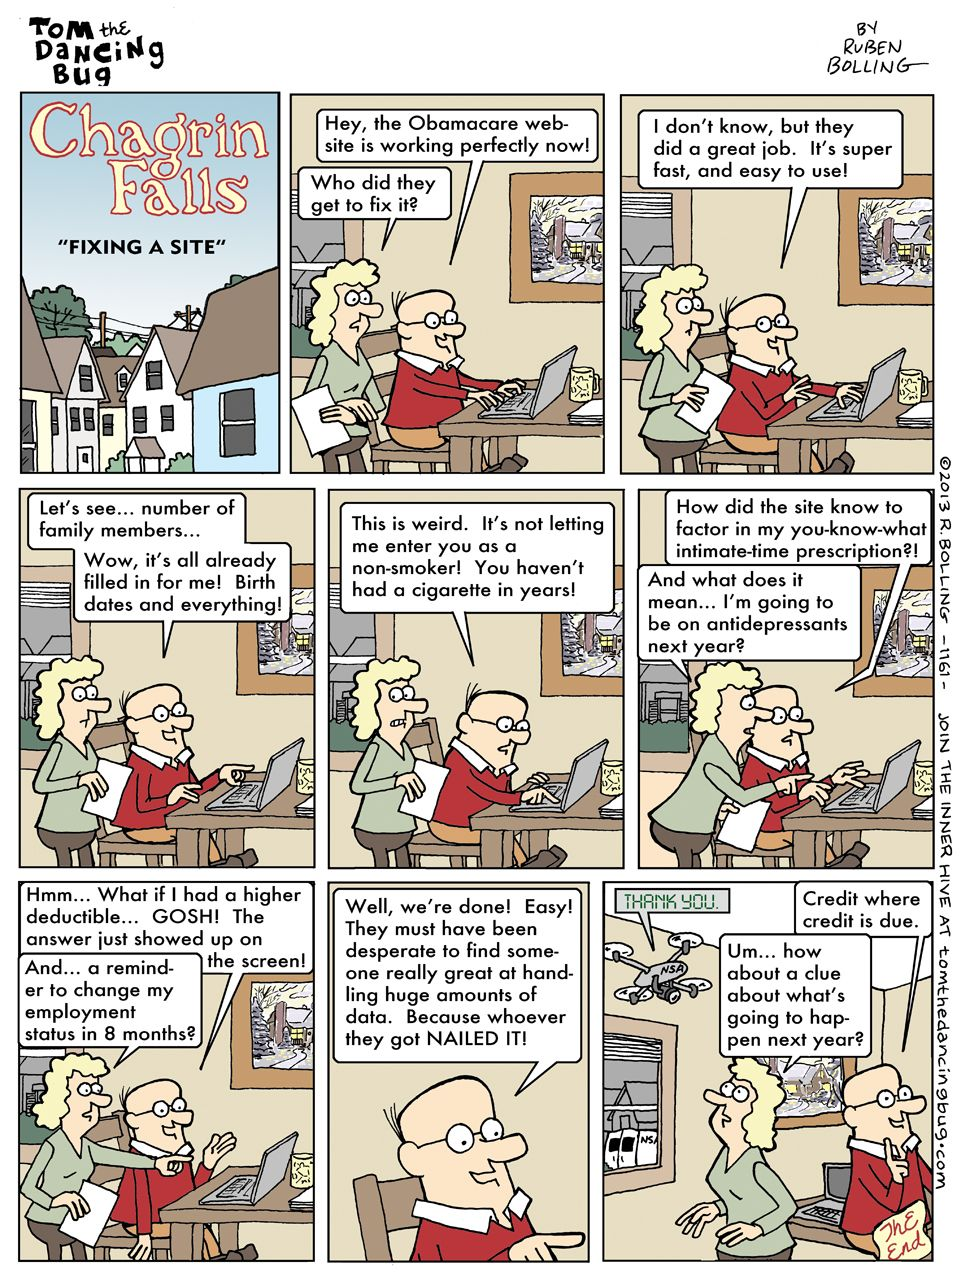 TOM THE DANCING BUG: How They Finally Fixed the Obamacare Website... - Boing Boing